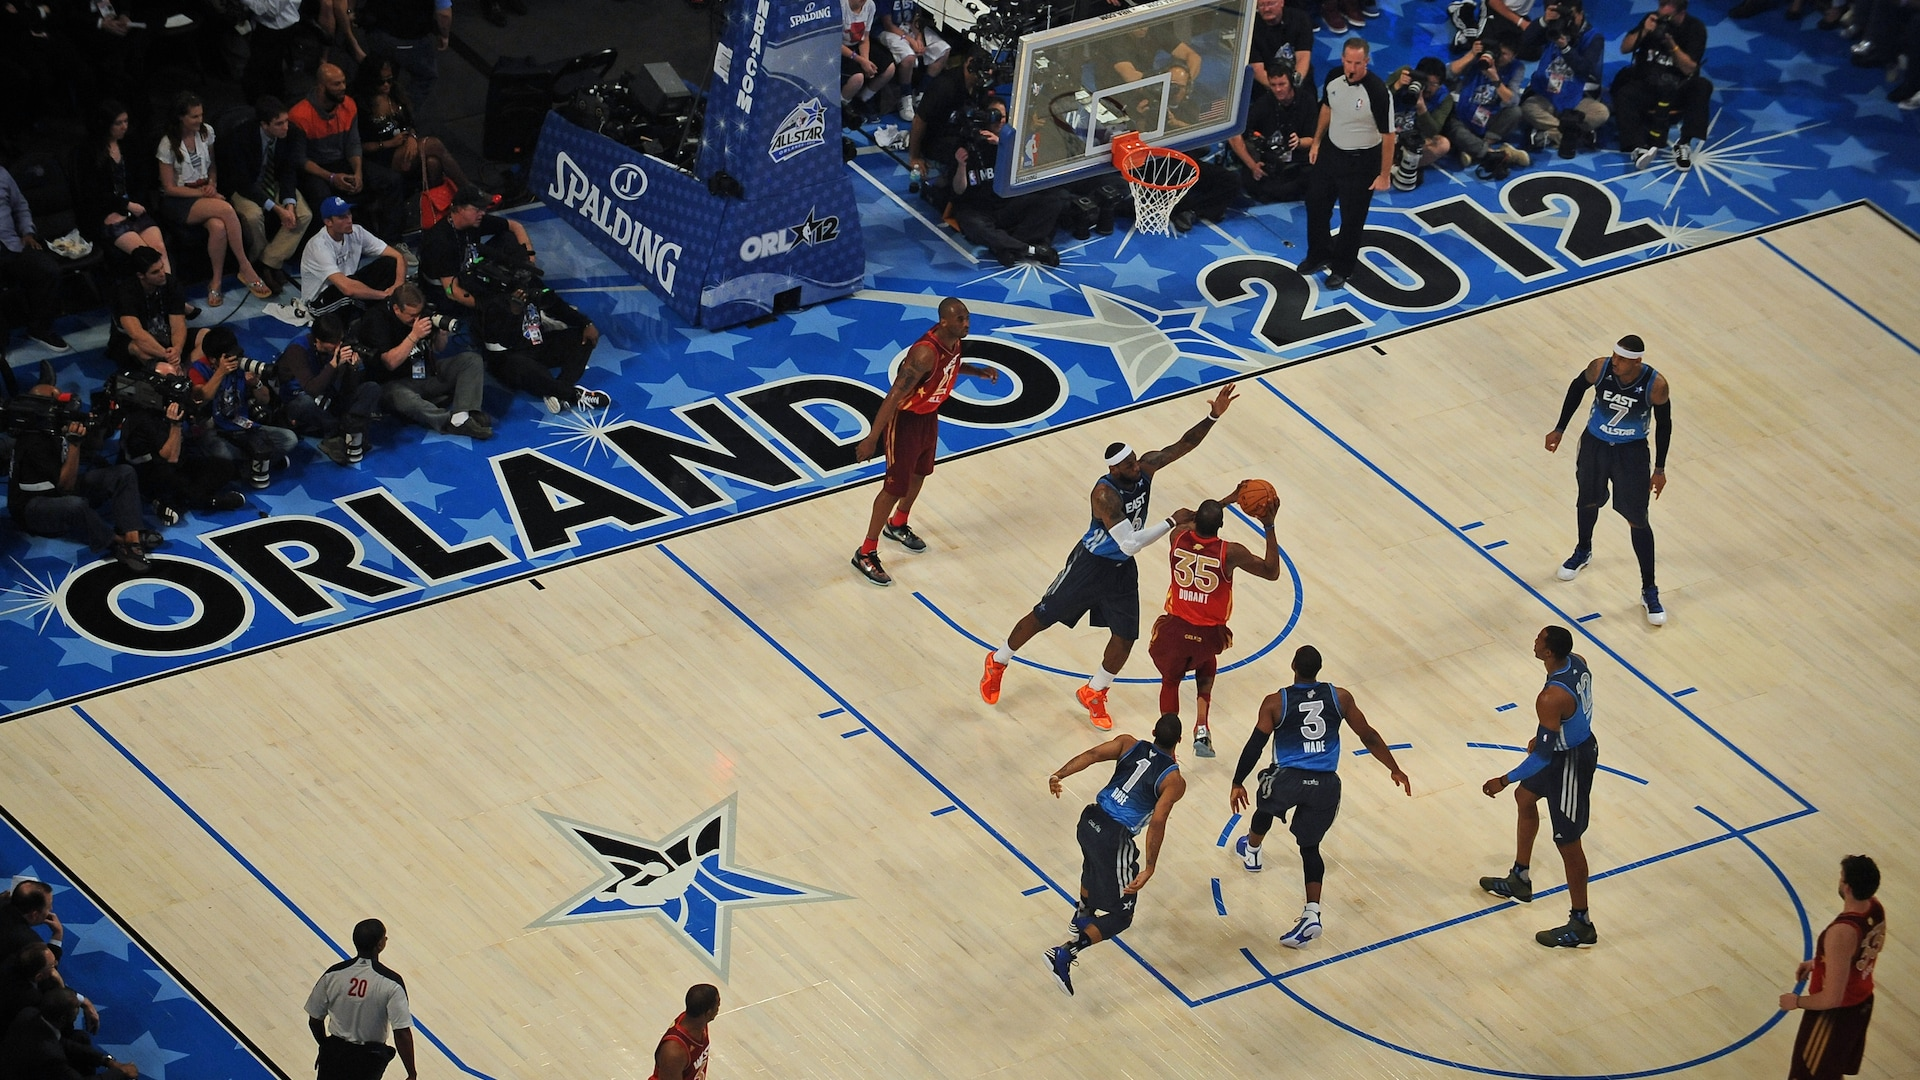 How the night of the 2012 All-Star Game in Orlando ignited today's NBA activism